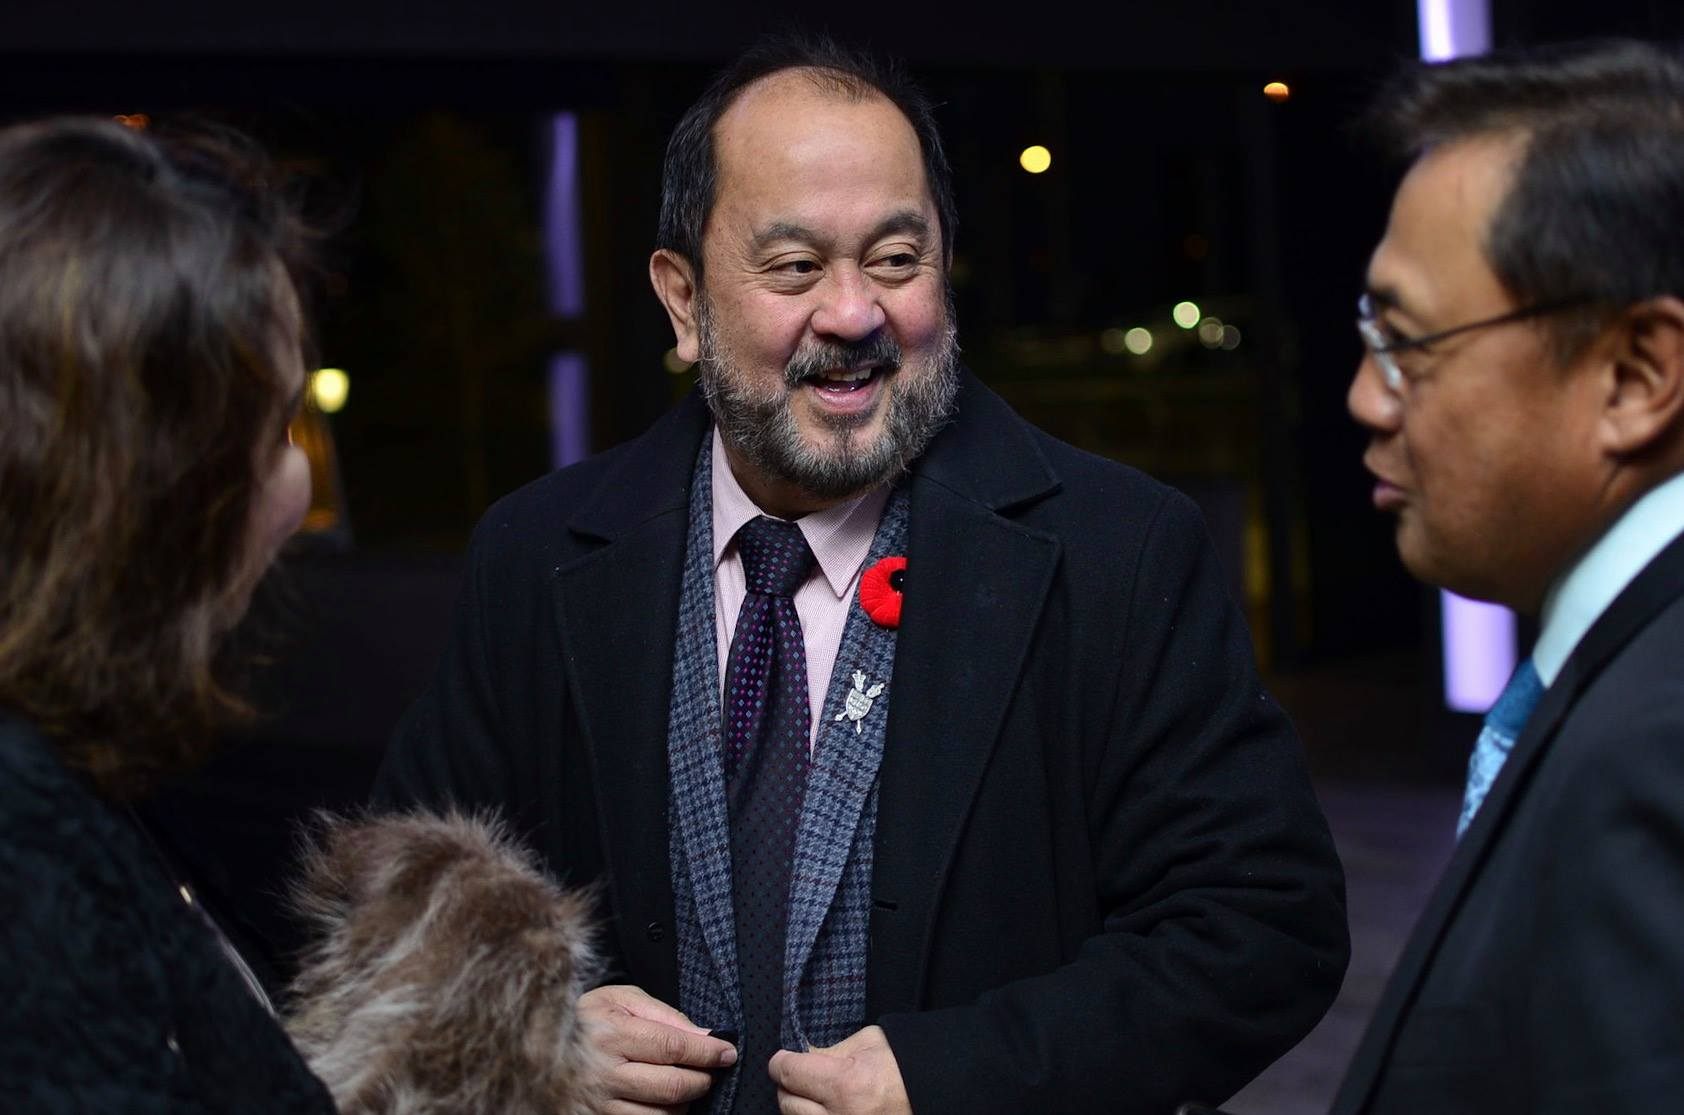 """""""My duty as a Senator is to represent the Province of Ontario and to represent Filipino-Canadians from all over the country, to give them a voice at the federal level of government. I am proud to represent you in the Senate of Canada,"""" Sen. Enverga said in September this year, as he reflects on his fifth year in the Senate."""